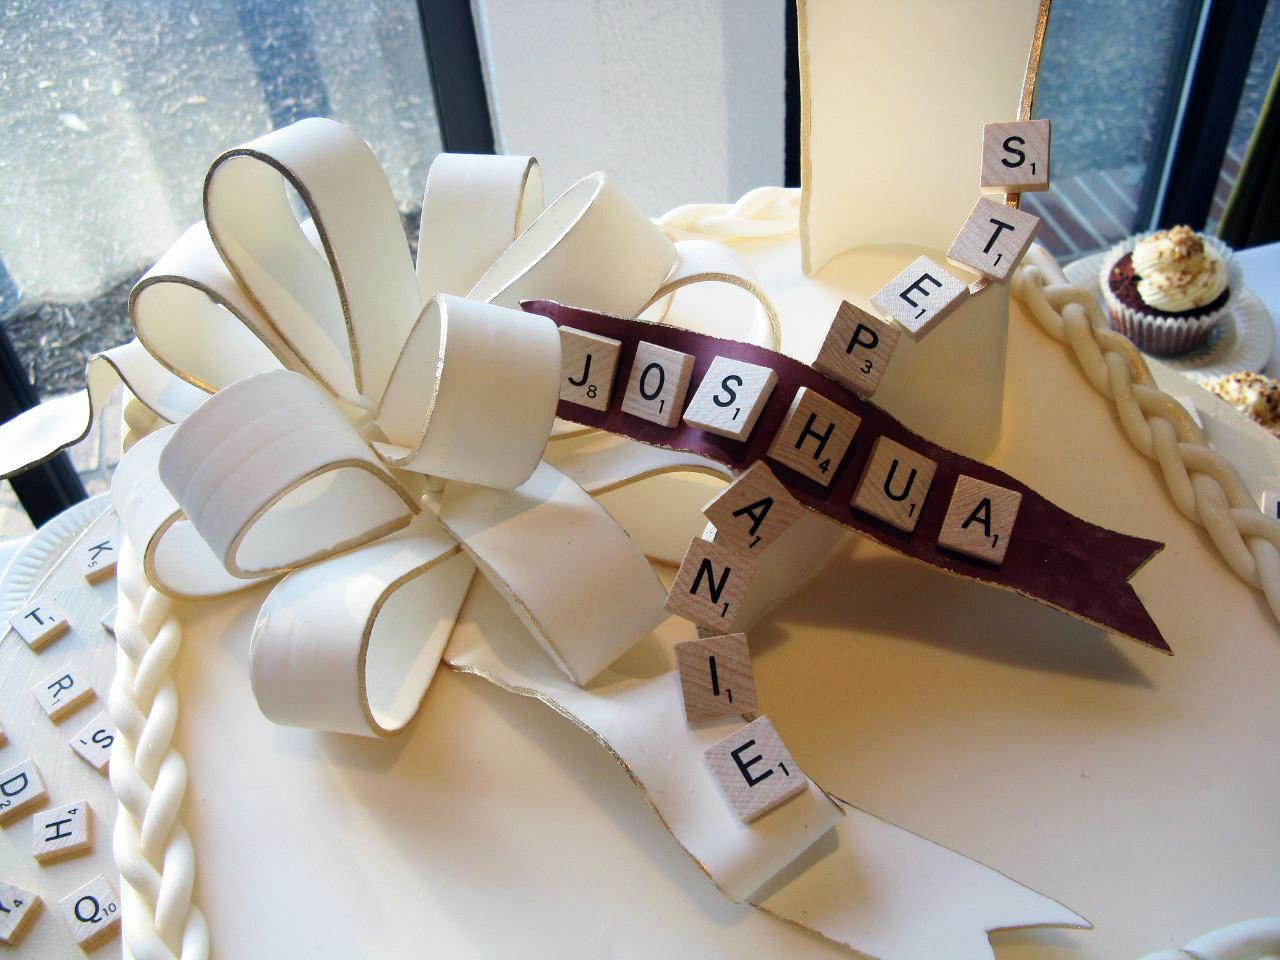 Word Nerds Unite: Planning a SCRABBLE-Themed Wedding